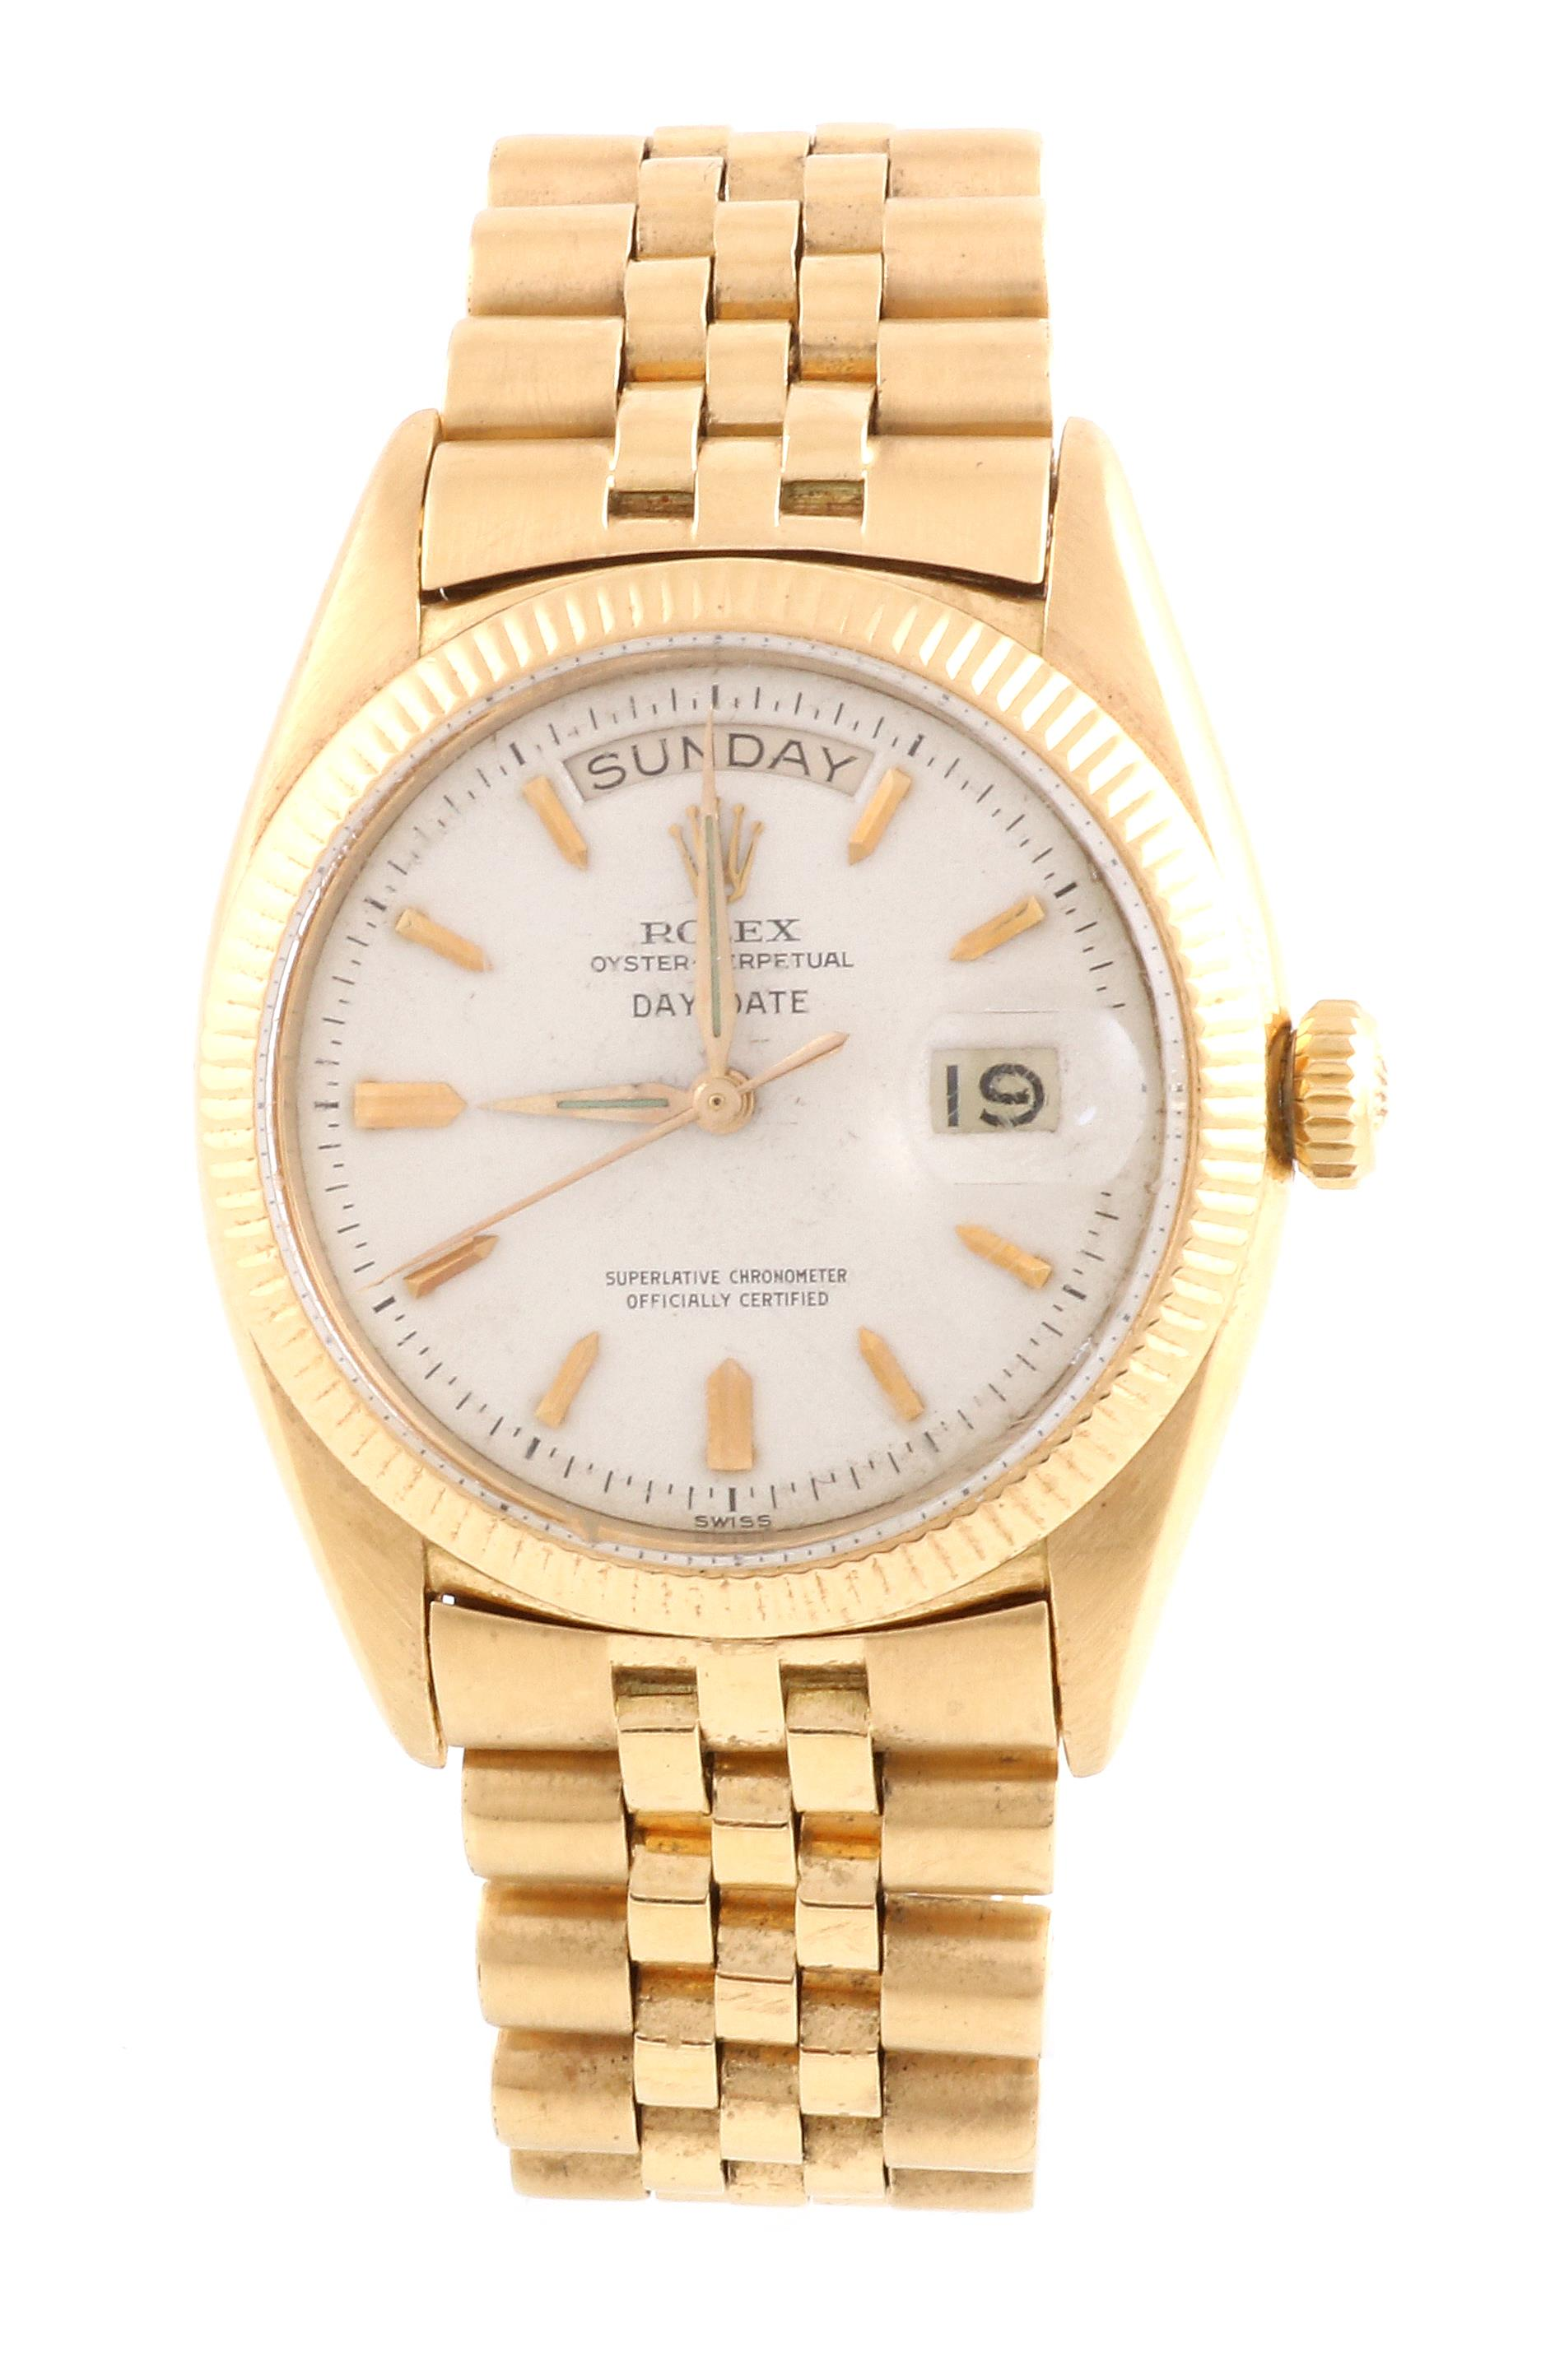 Rolex Oyster Perpetual Day,Date , Wrist Watches 2017/08/17